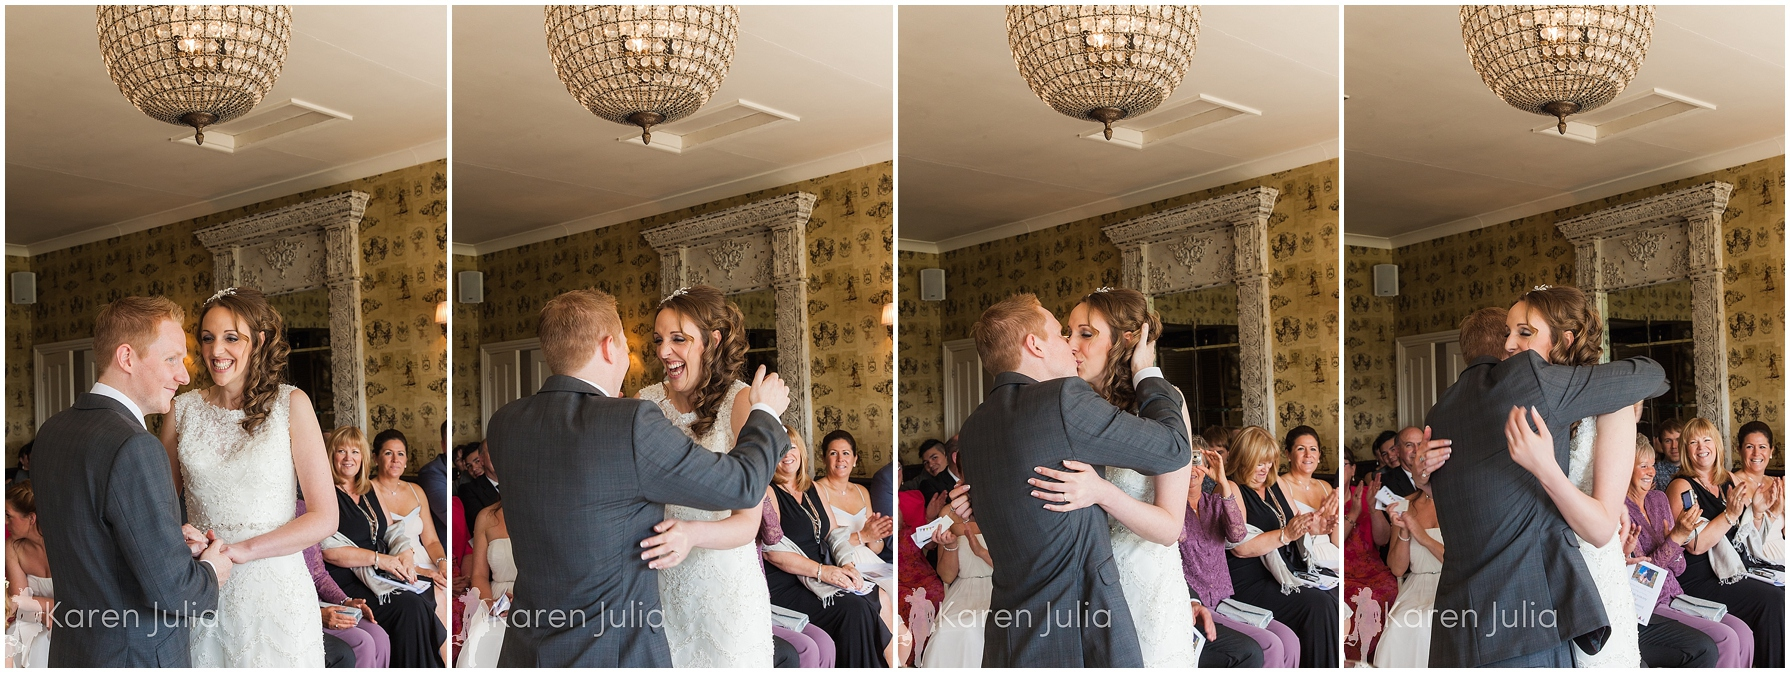 Shireburn-Arms-Wedding-Photography-23